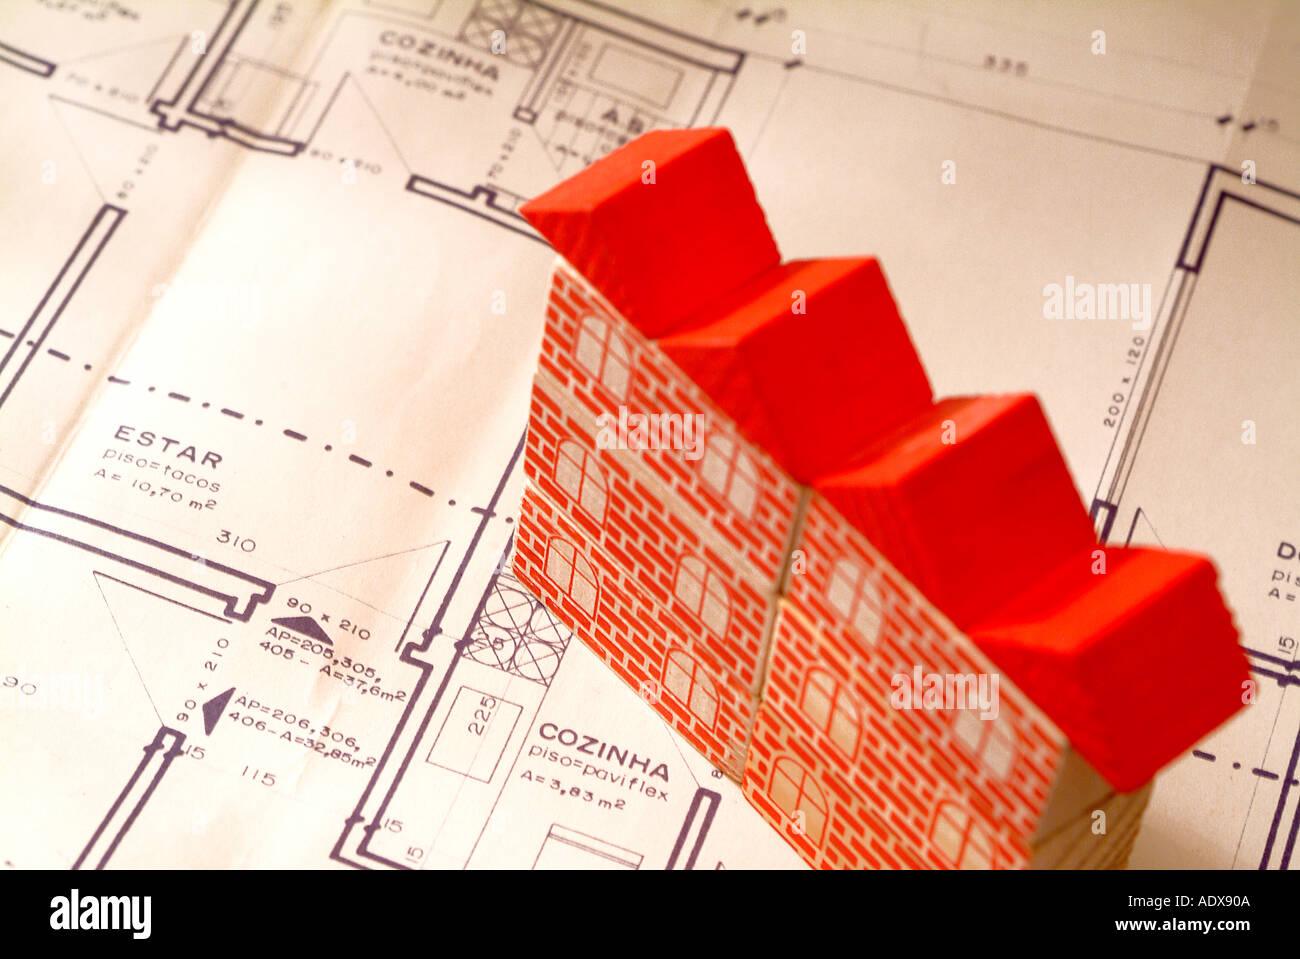 Architecture blueprint blocks toy model building red roof plan architecture blueprint blocks toy model building red roof plan scheme diagram project concept conceptual background architecture malvernweather Image collections